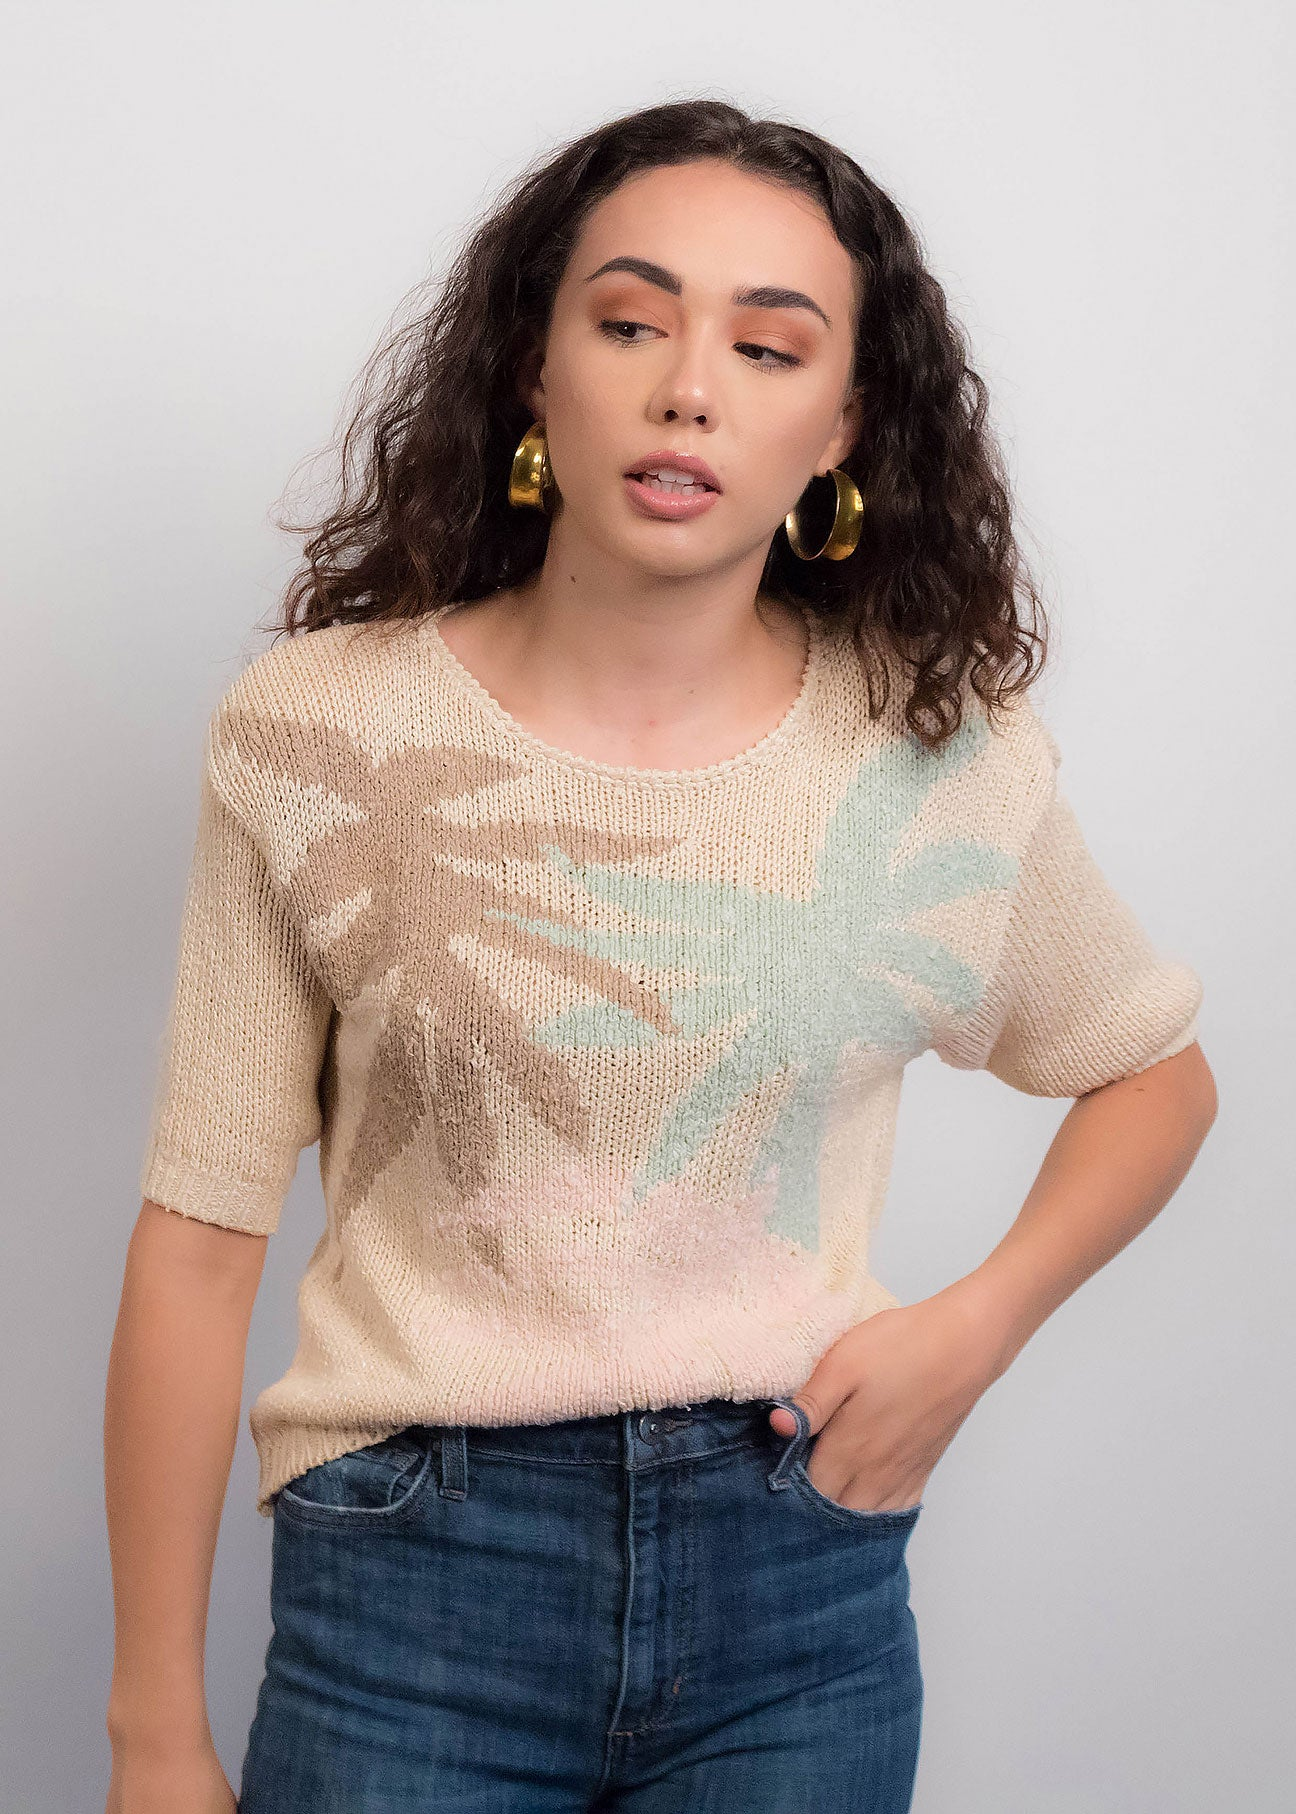 80s Tropical Knit Top